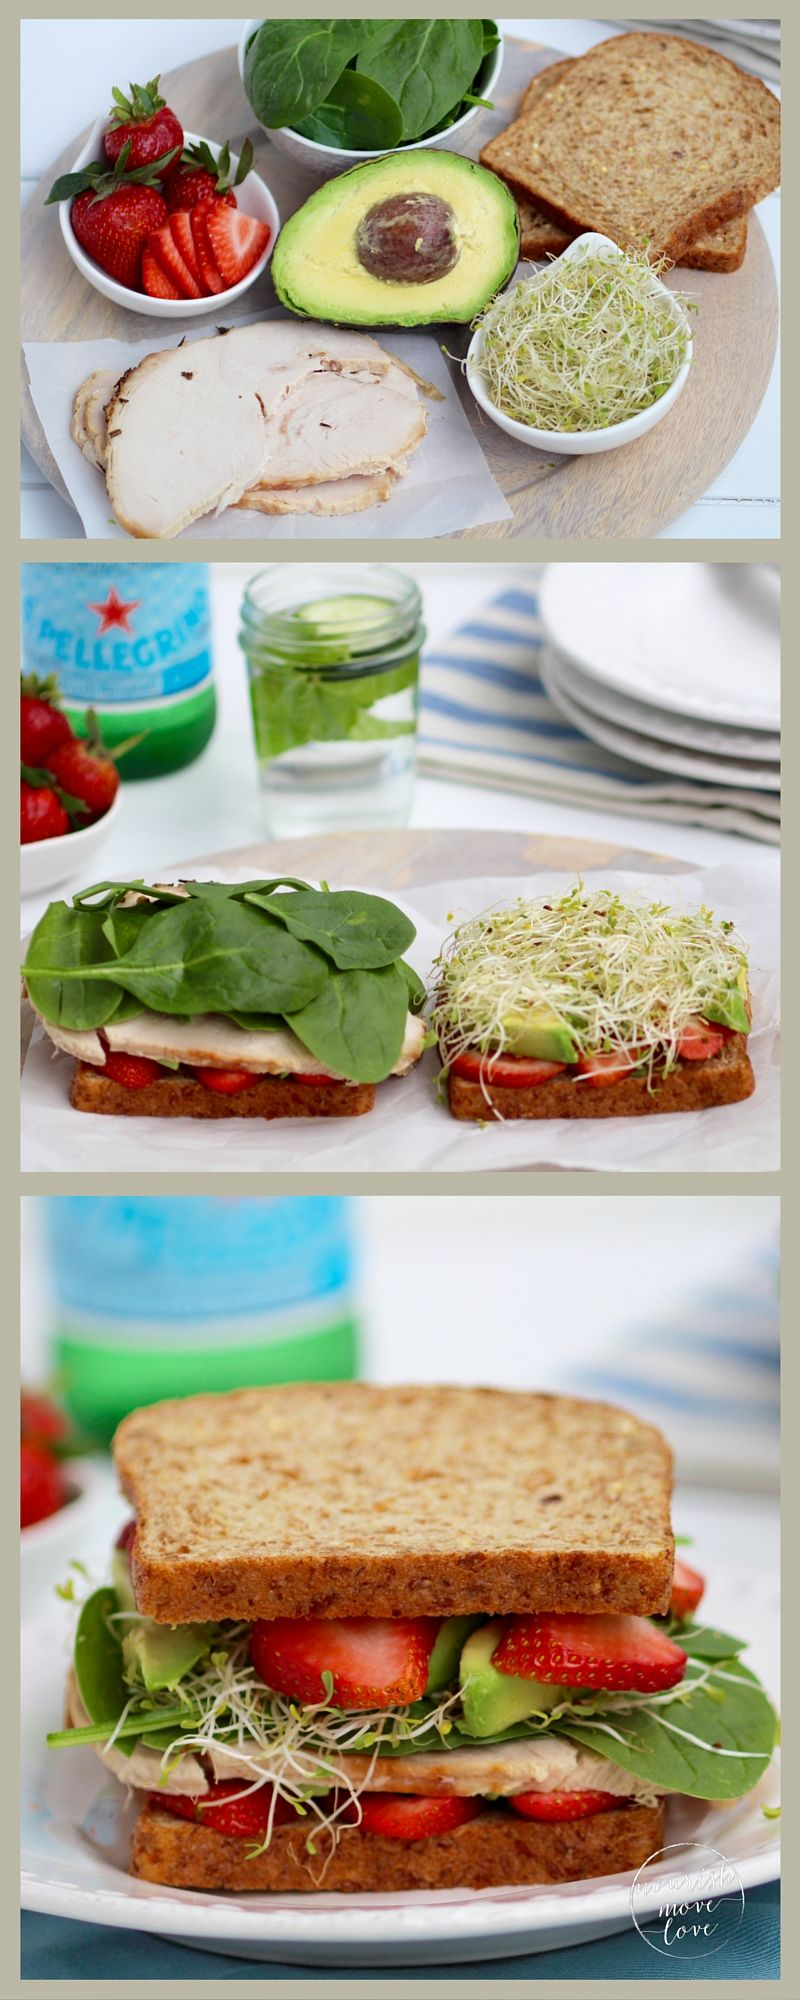 Strawberry, spinach & turkey sandwich Recipe Food